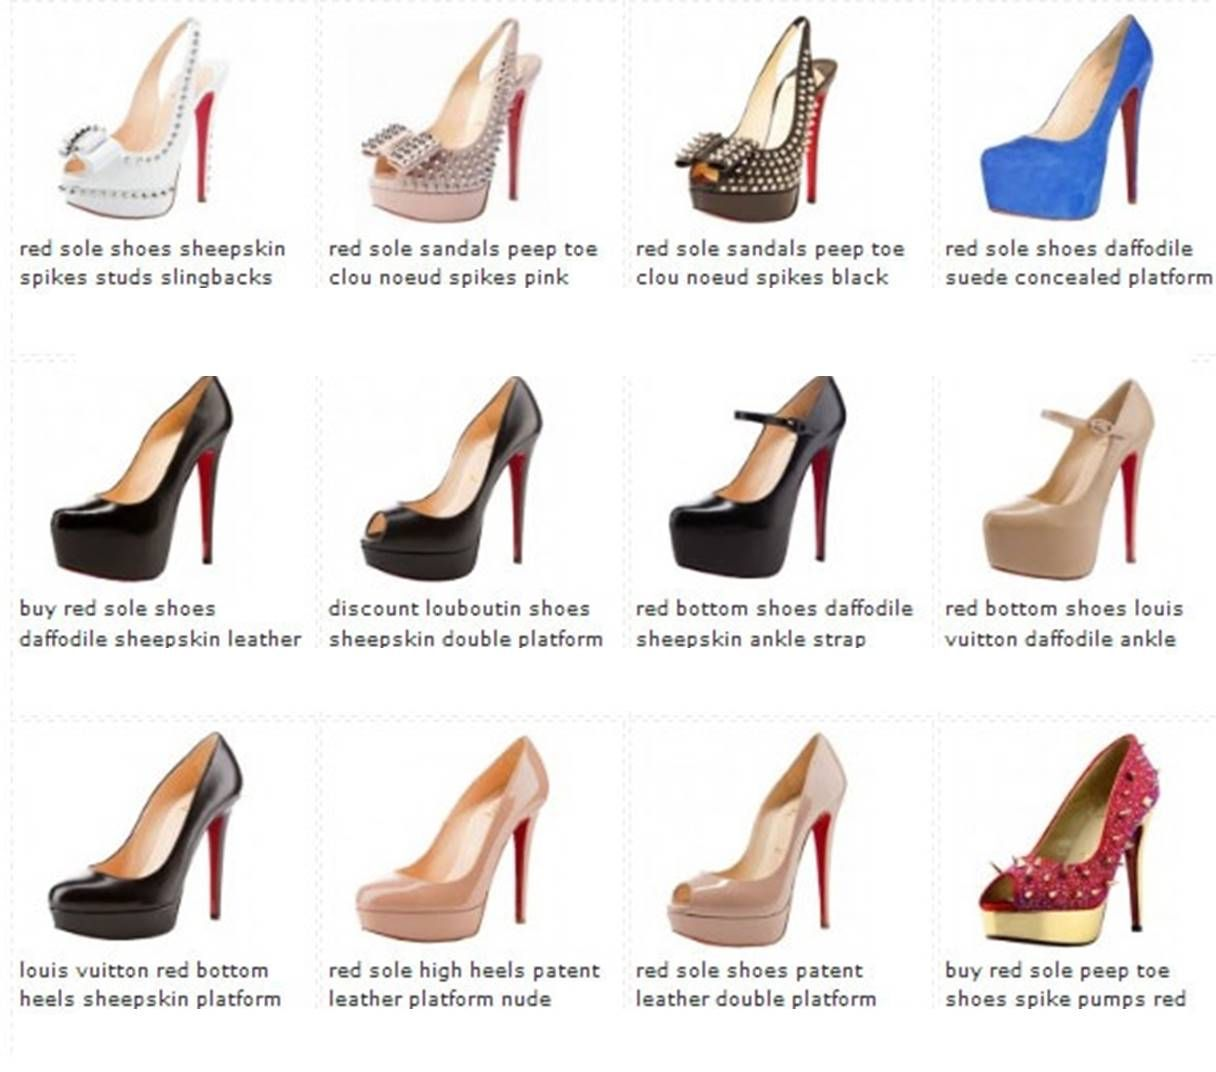 603a9dbdf7 Louis Vouitton Collection! Louis Vuitton Red Bottoms, Red Bottom Heels, Red  High Heels